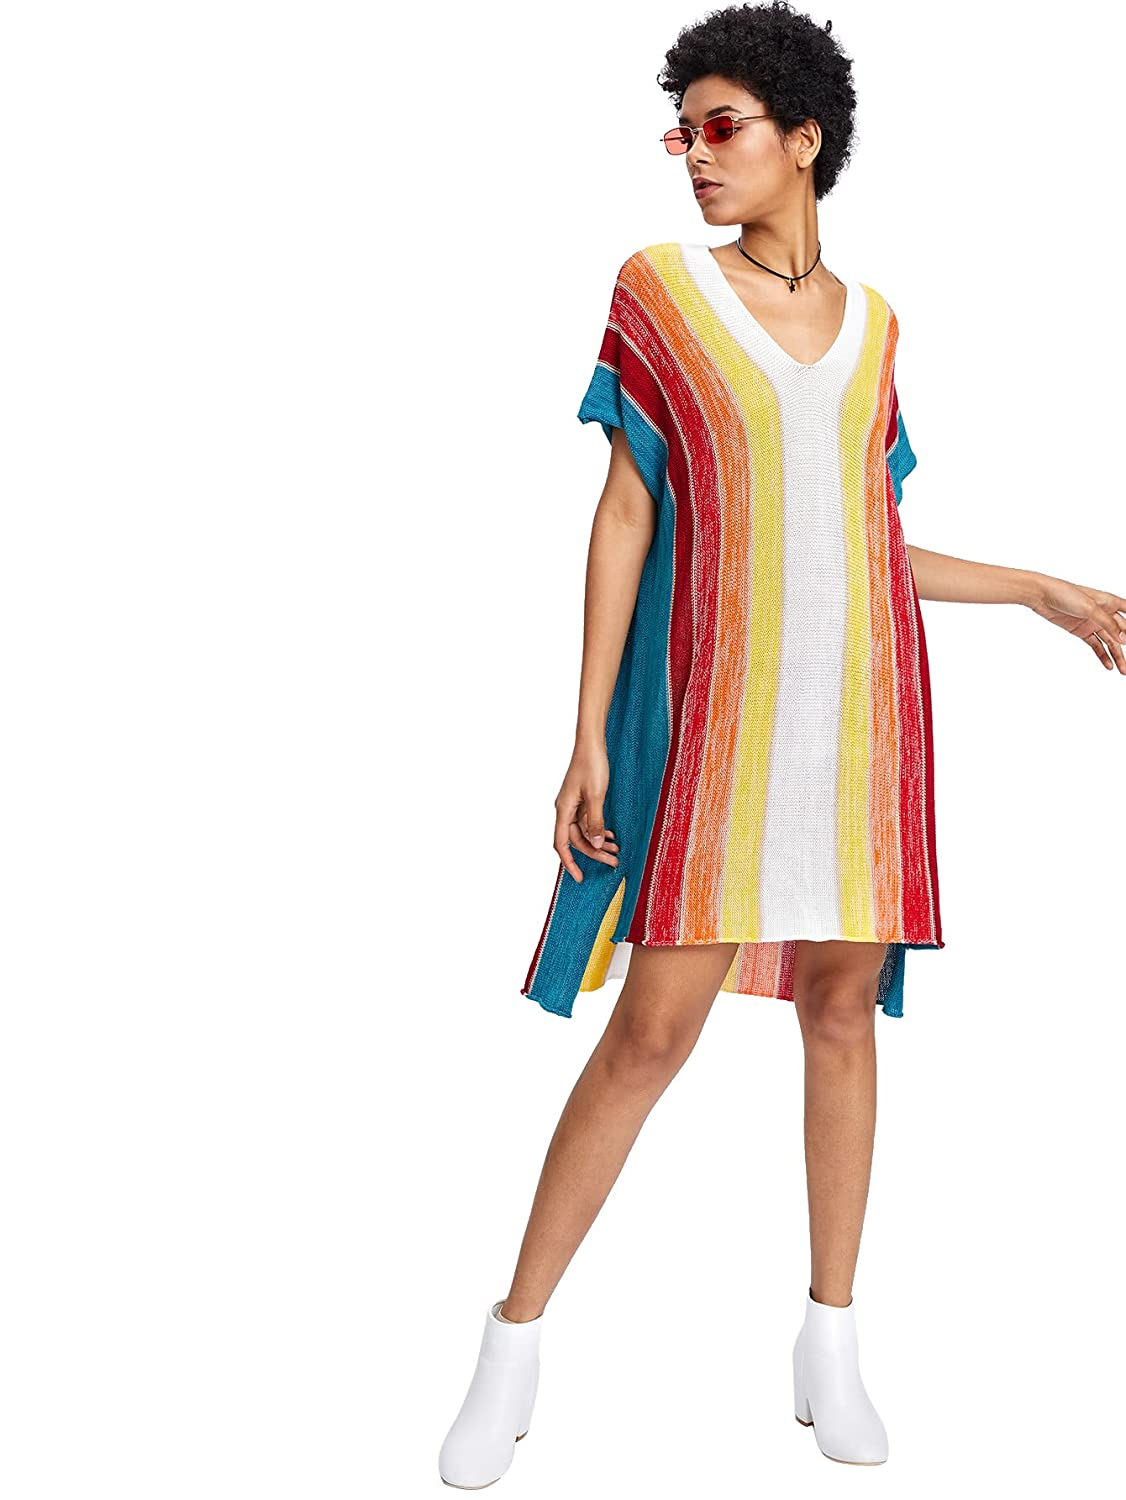 5dec85685967c Romwe Women's Short Sleeve Top Loose Fit Striped Color Block Rainbow Print  Step Hem Dress M at Amazon Women's Clothing store: